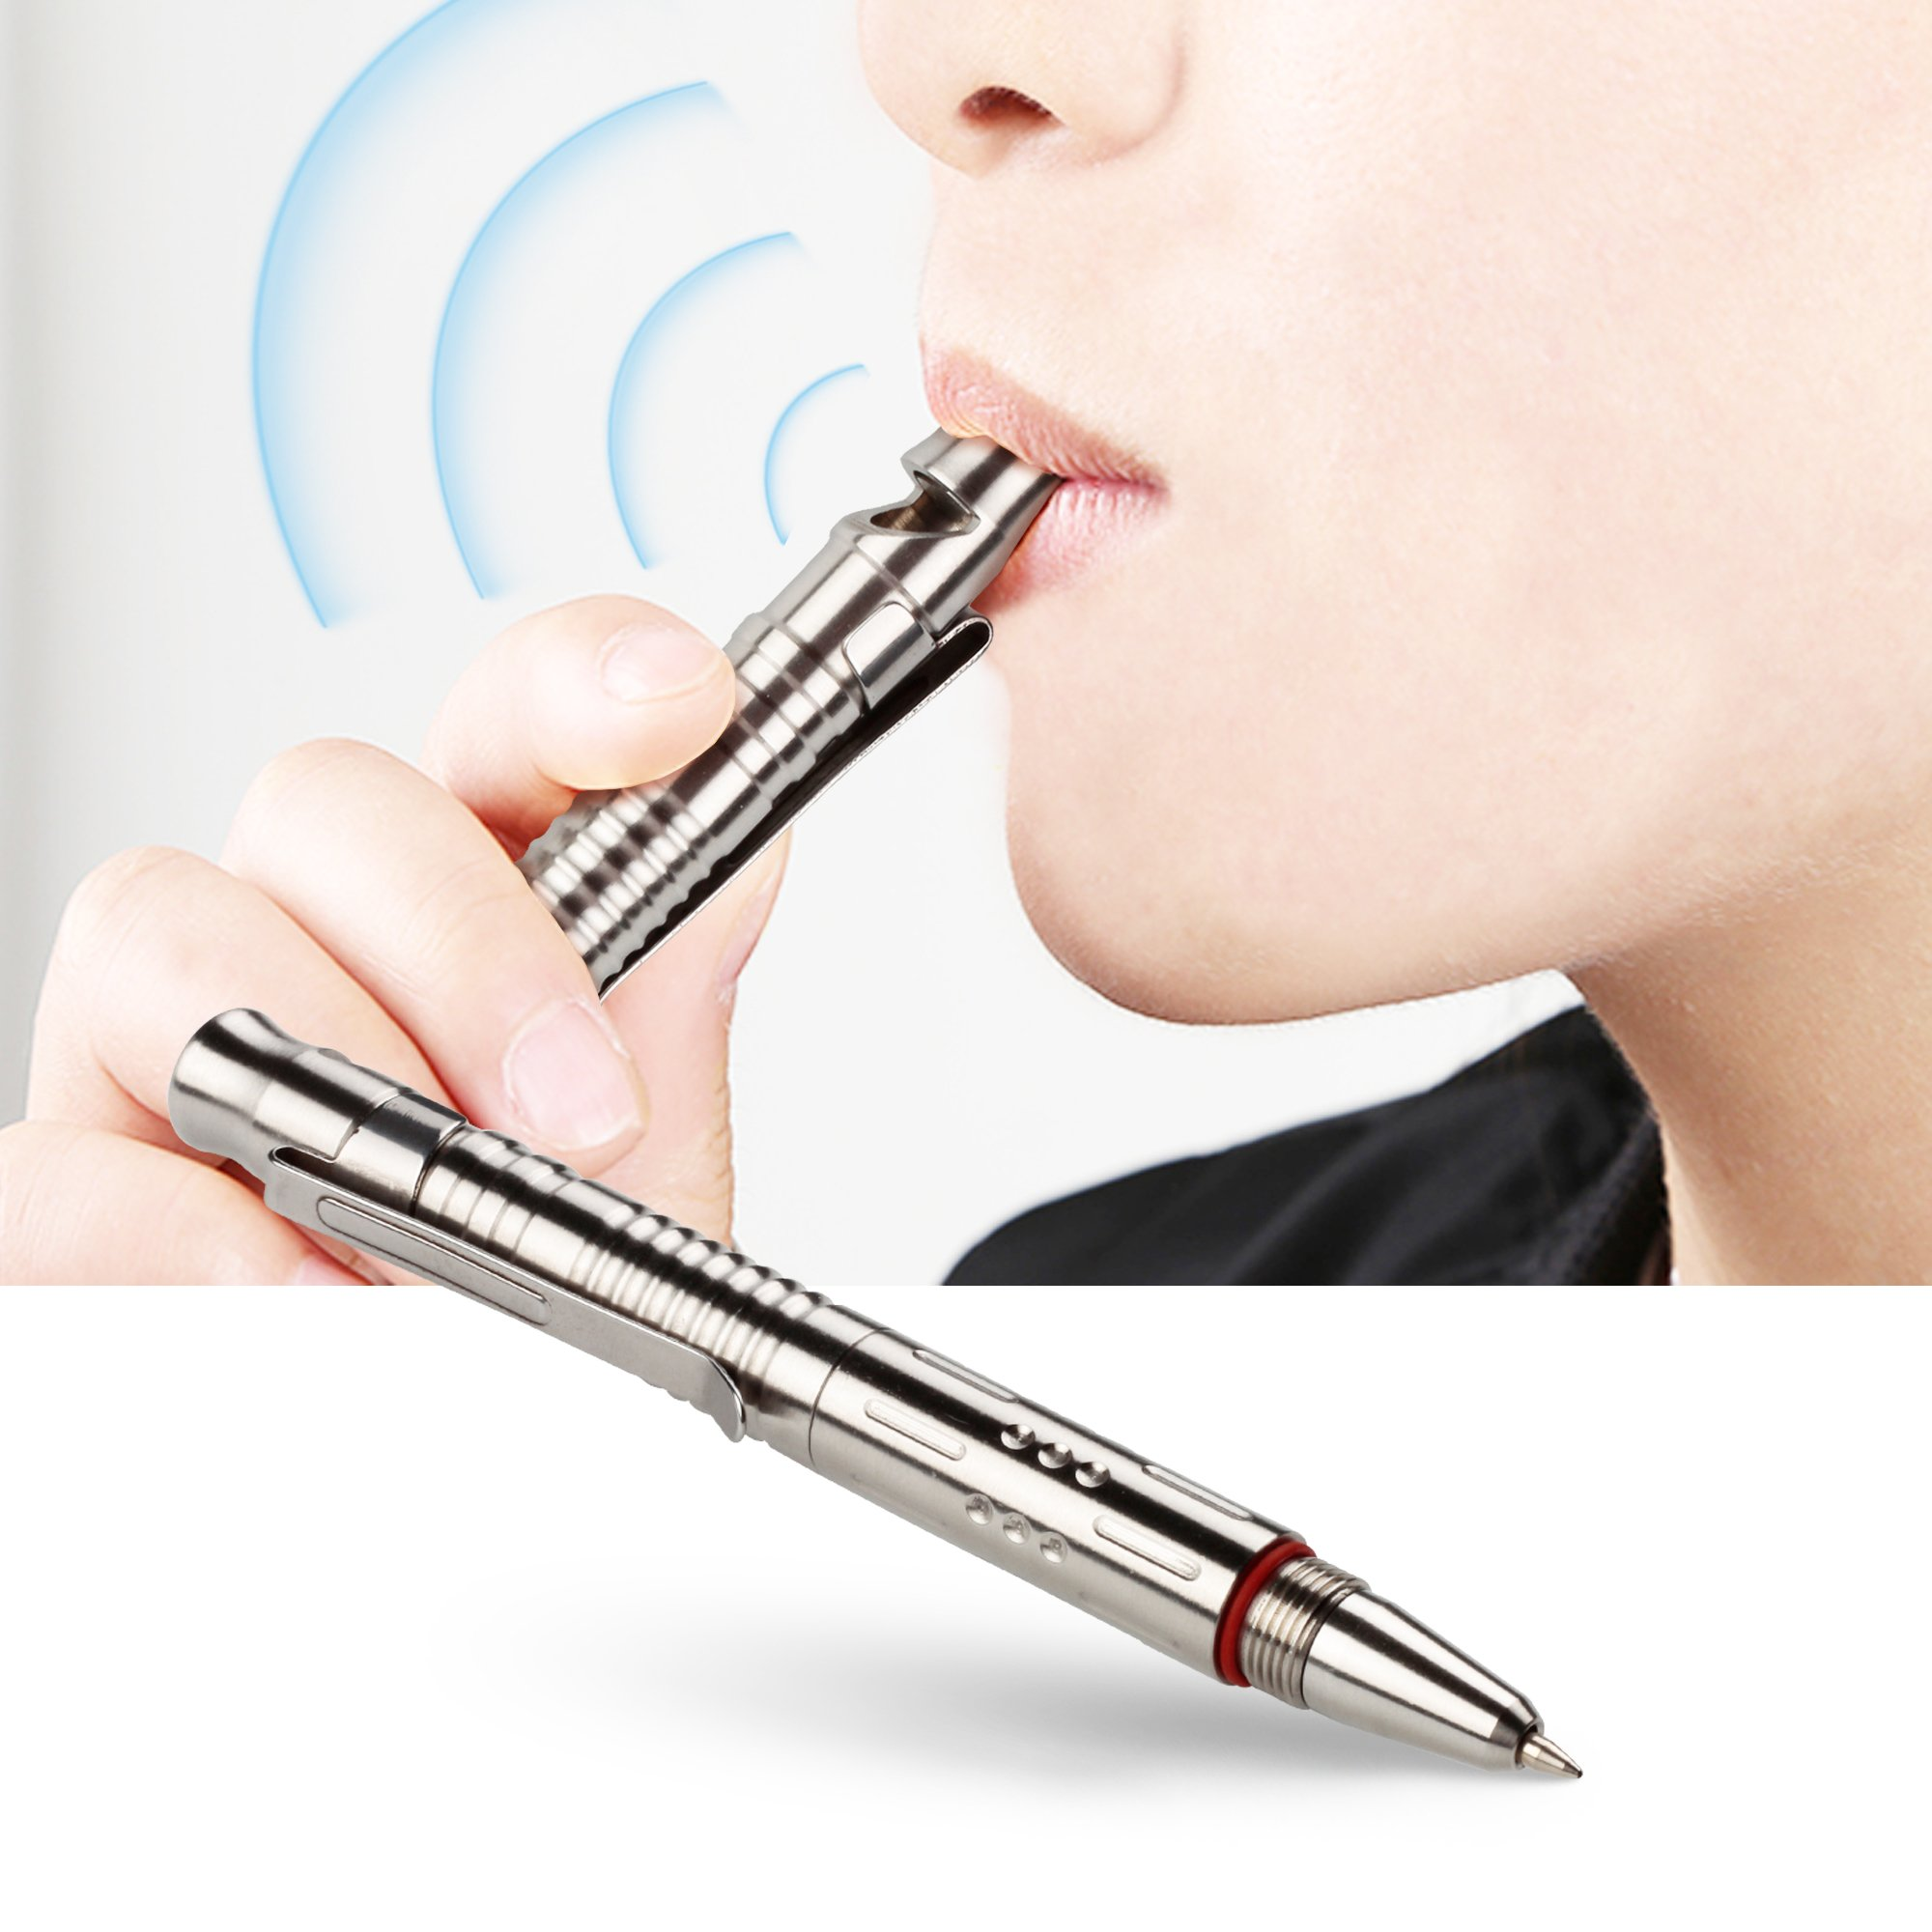 Stainless Steel Tactical Pen with Whistle and Refill Cap & Clip for Outdoor Car Office Home Signature Gift Self Defense Alarm Uses, EDC Self Protection Tool Pen with 2 Smooth Black Writing Refills